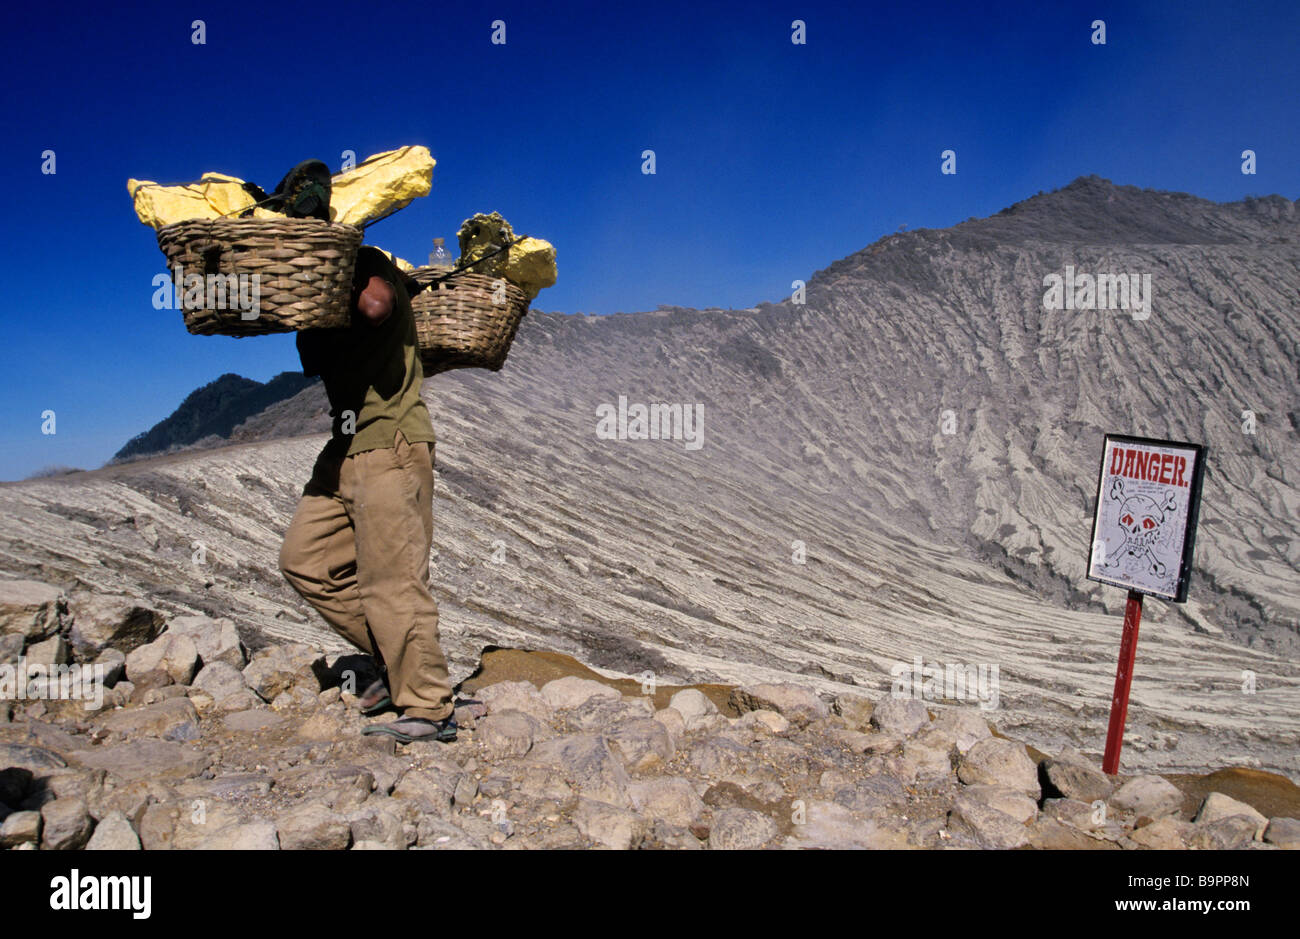 Indonesia, Java, Kawah Ijen crater, sulfur extraction - Stock Image